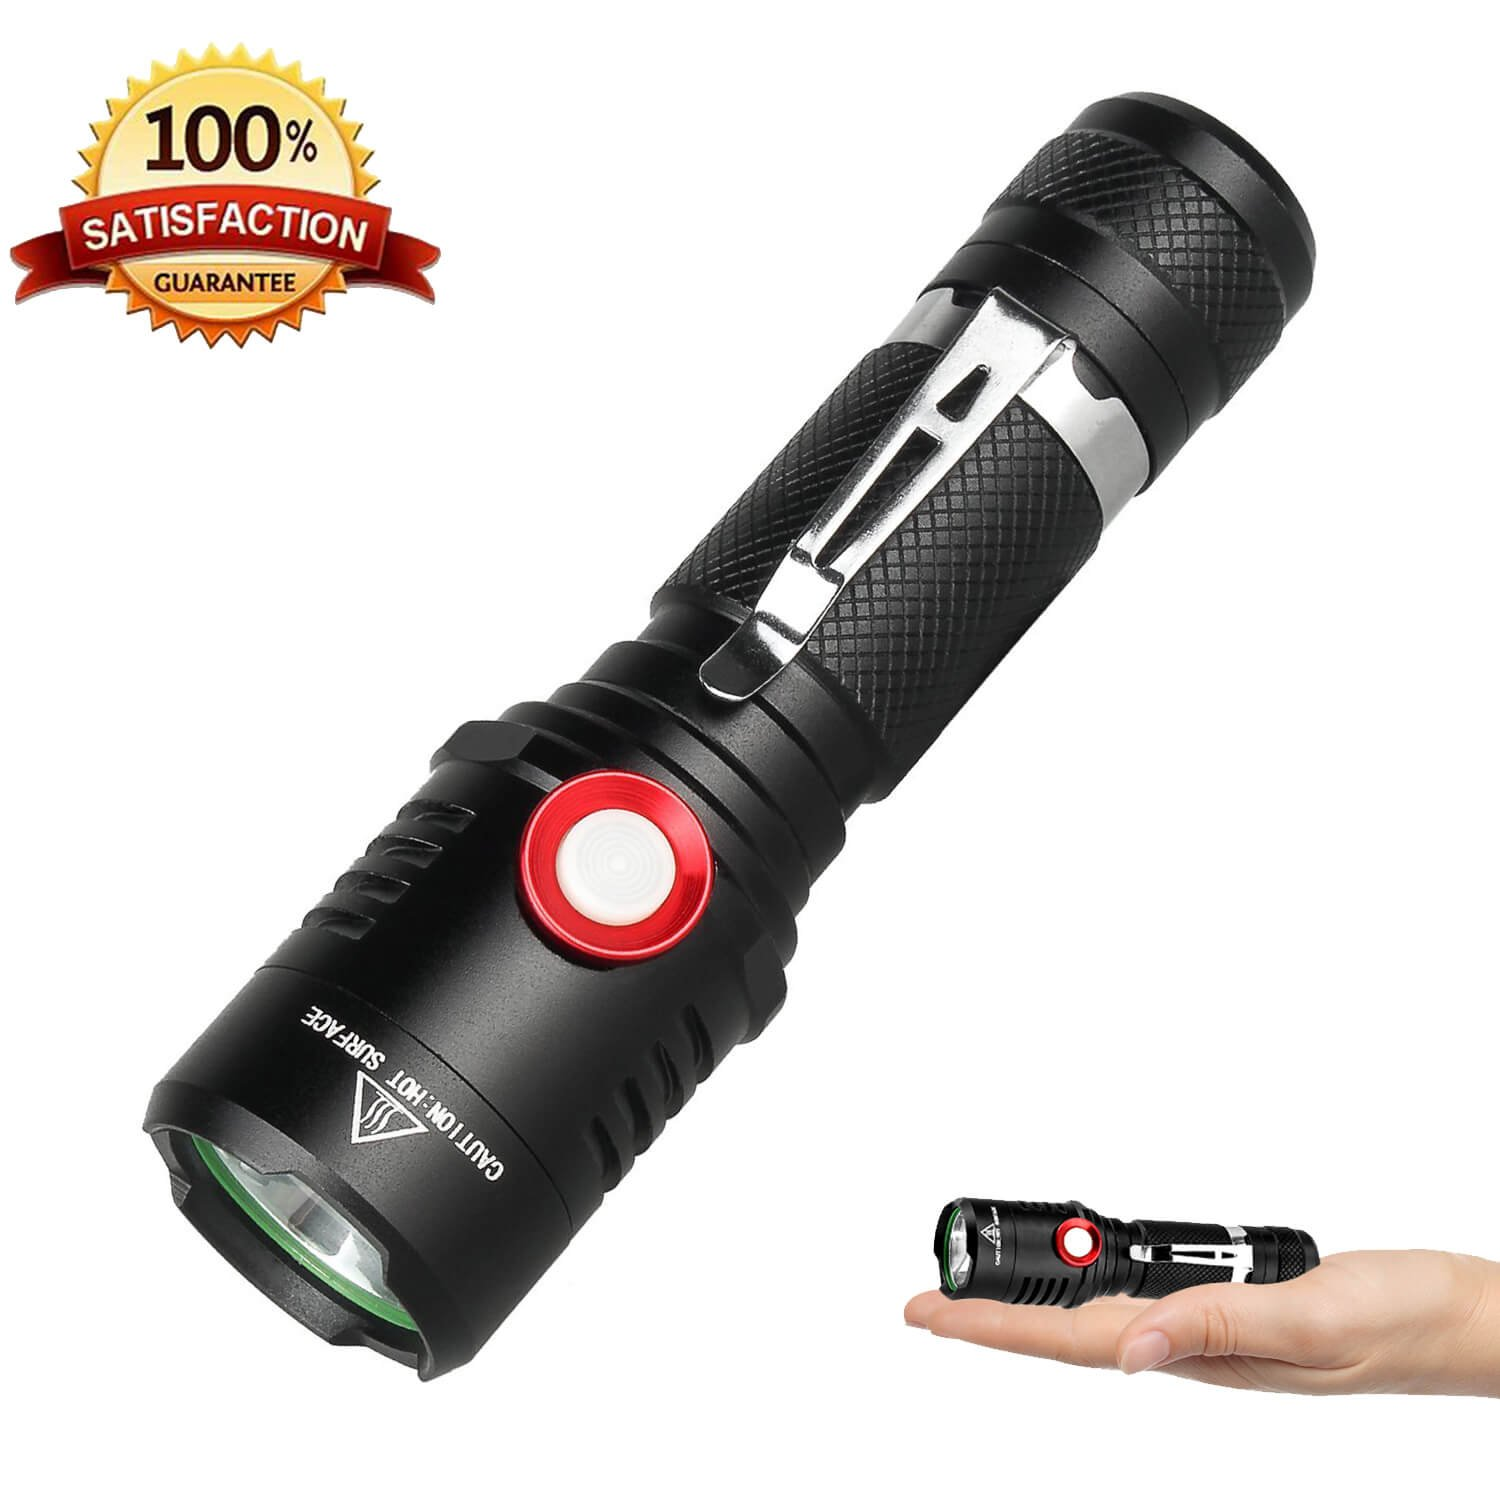 Rechargeable Tactical 18650 USB Flashlight, Powerful Cree XML2 Led Flashlights, Stepless Dimming Bright 1500 Lumens Waterproof Torch Light, Intelligent Power Indicator, Battery+Charge Cable Included by Helius (Image #1)